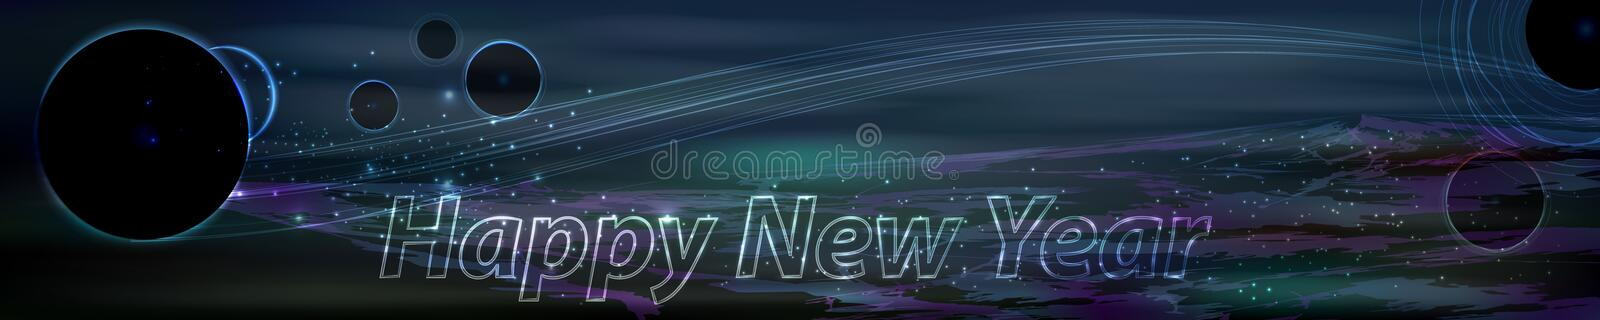 Space panorama new year. long. Horizontal image of a large size. dark planets. black silhouettes royalty free illustration